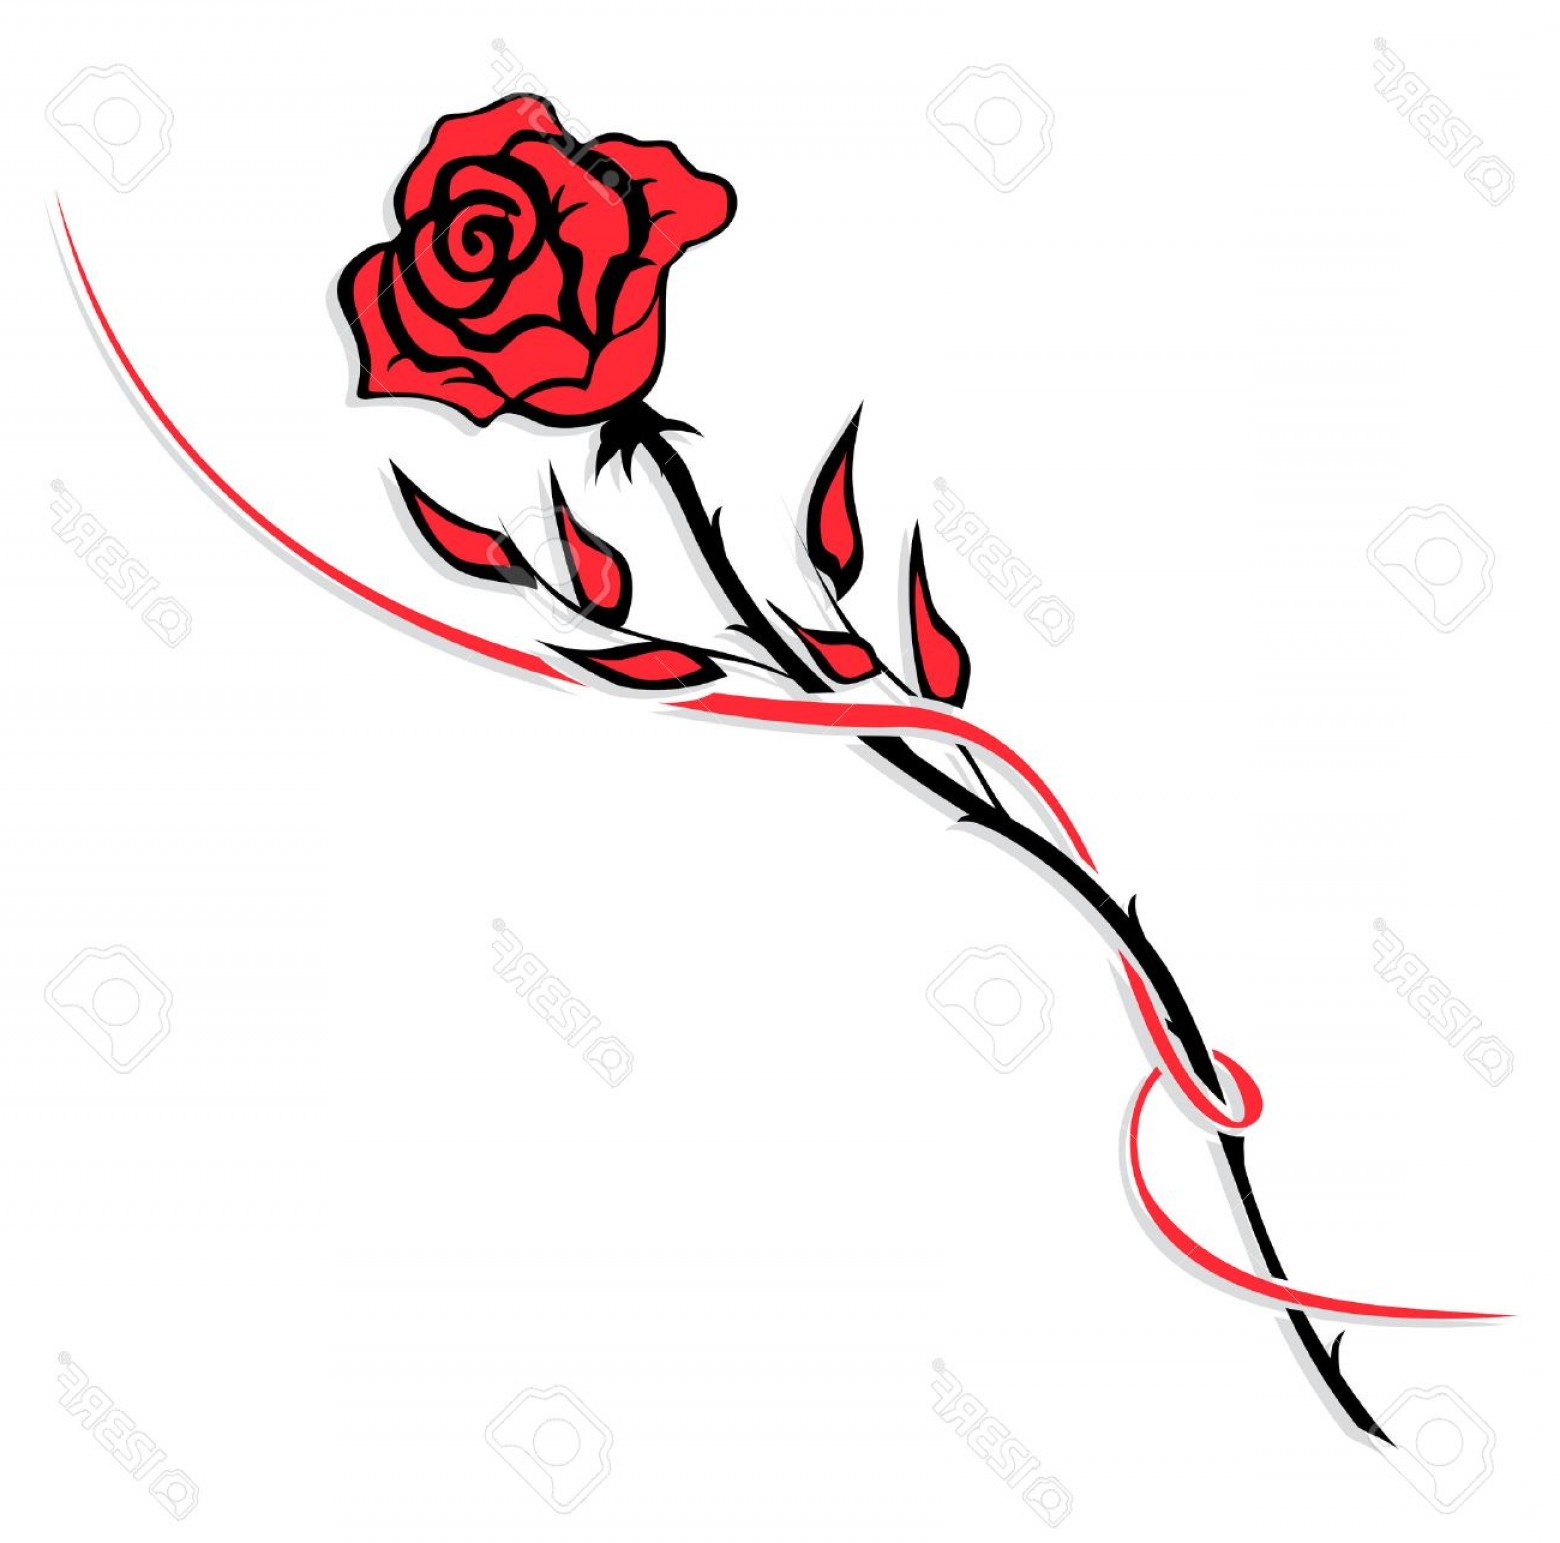 1560x1543 Photosimple Red Rose Drawing Isolated On White Lazttweet